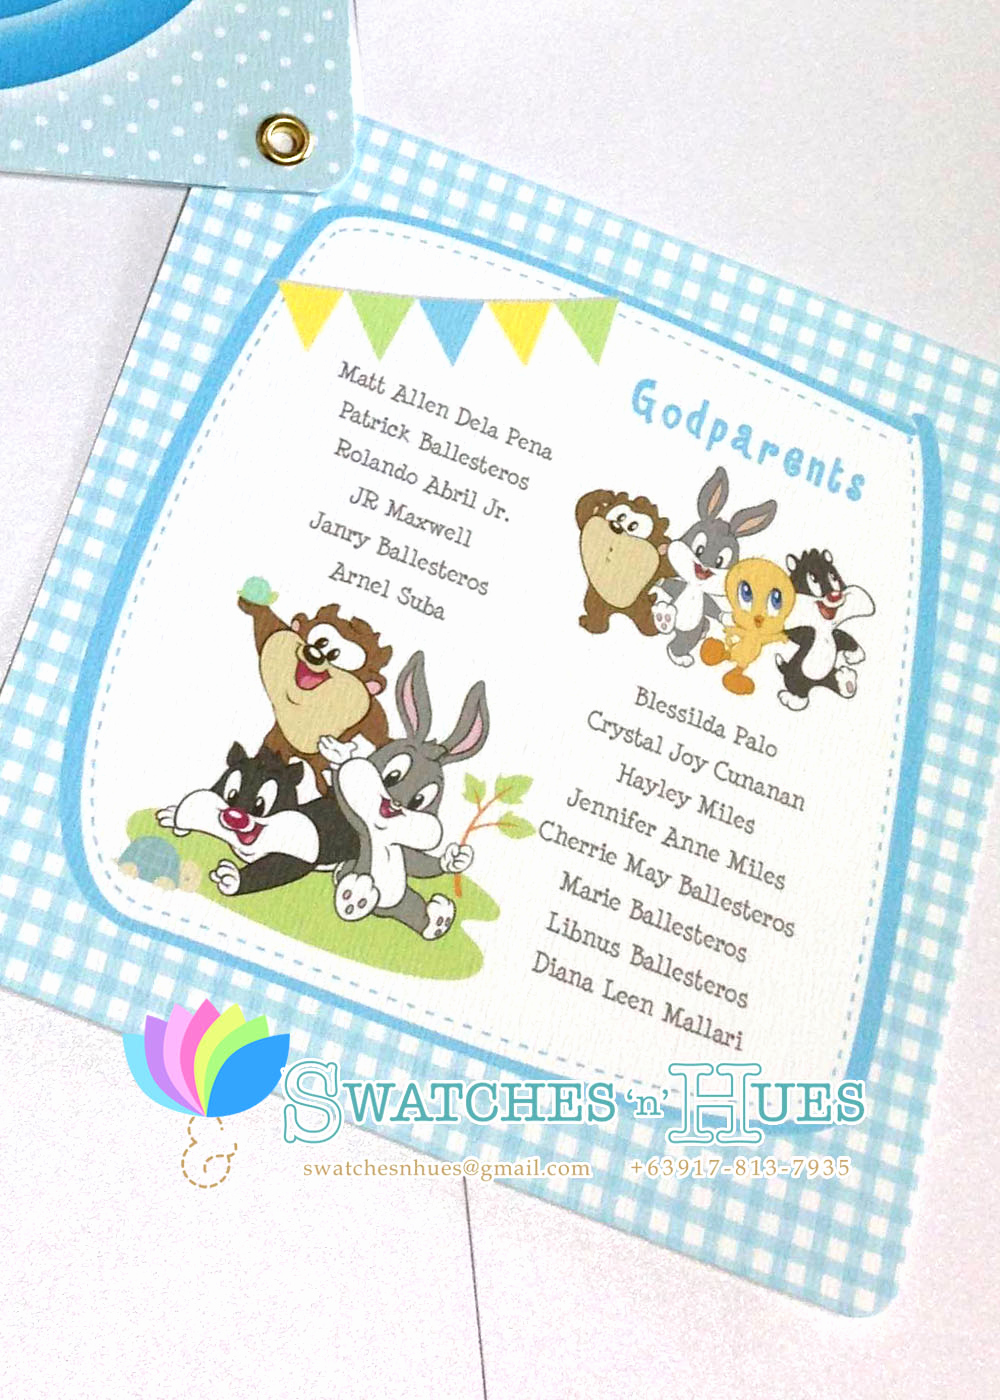 Baby Looney Tunes Invitation Inspirational Swatches & Hues Handmade with Tlc Looney Tunes Baby